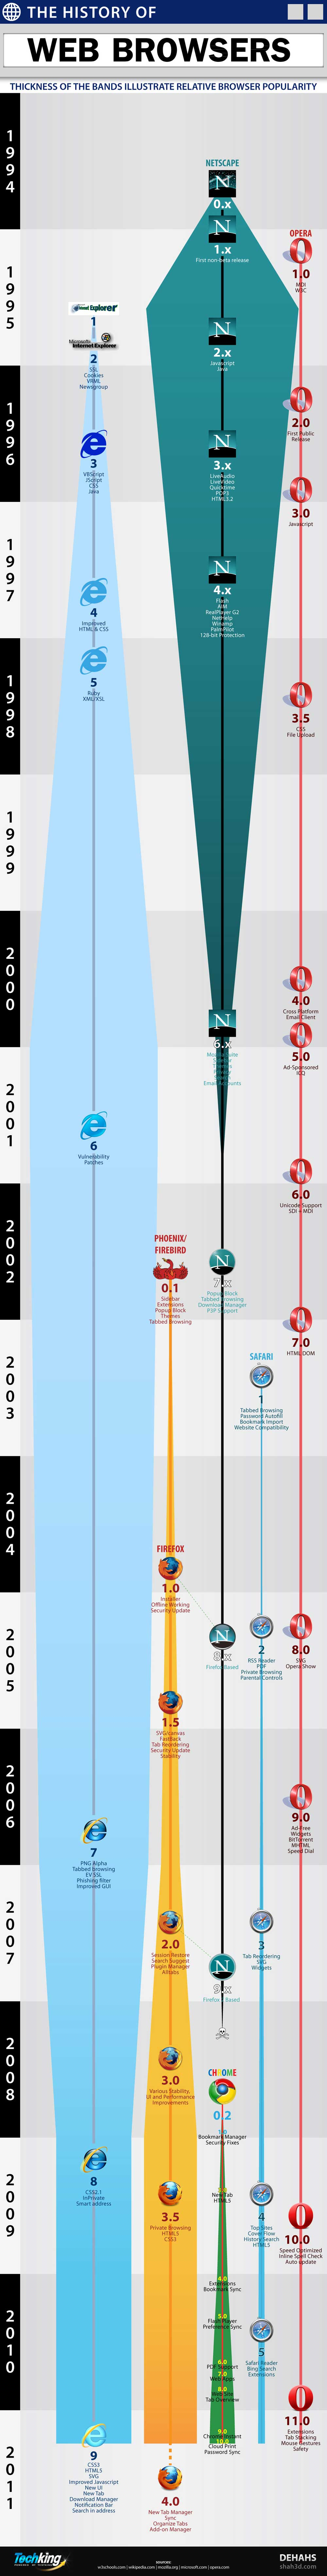 History of the Web Browser